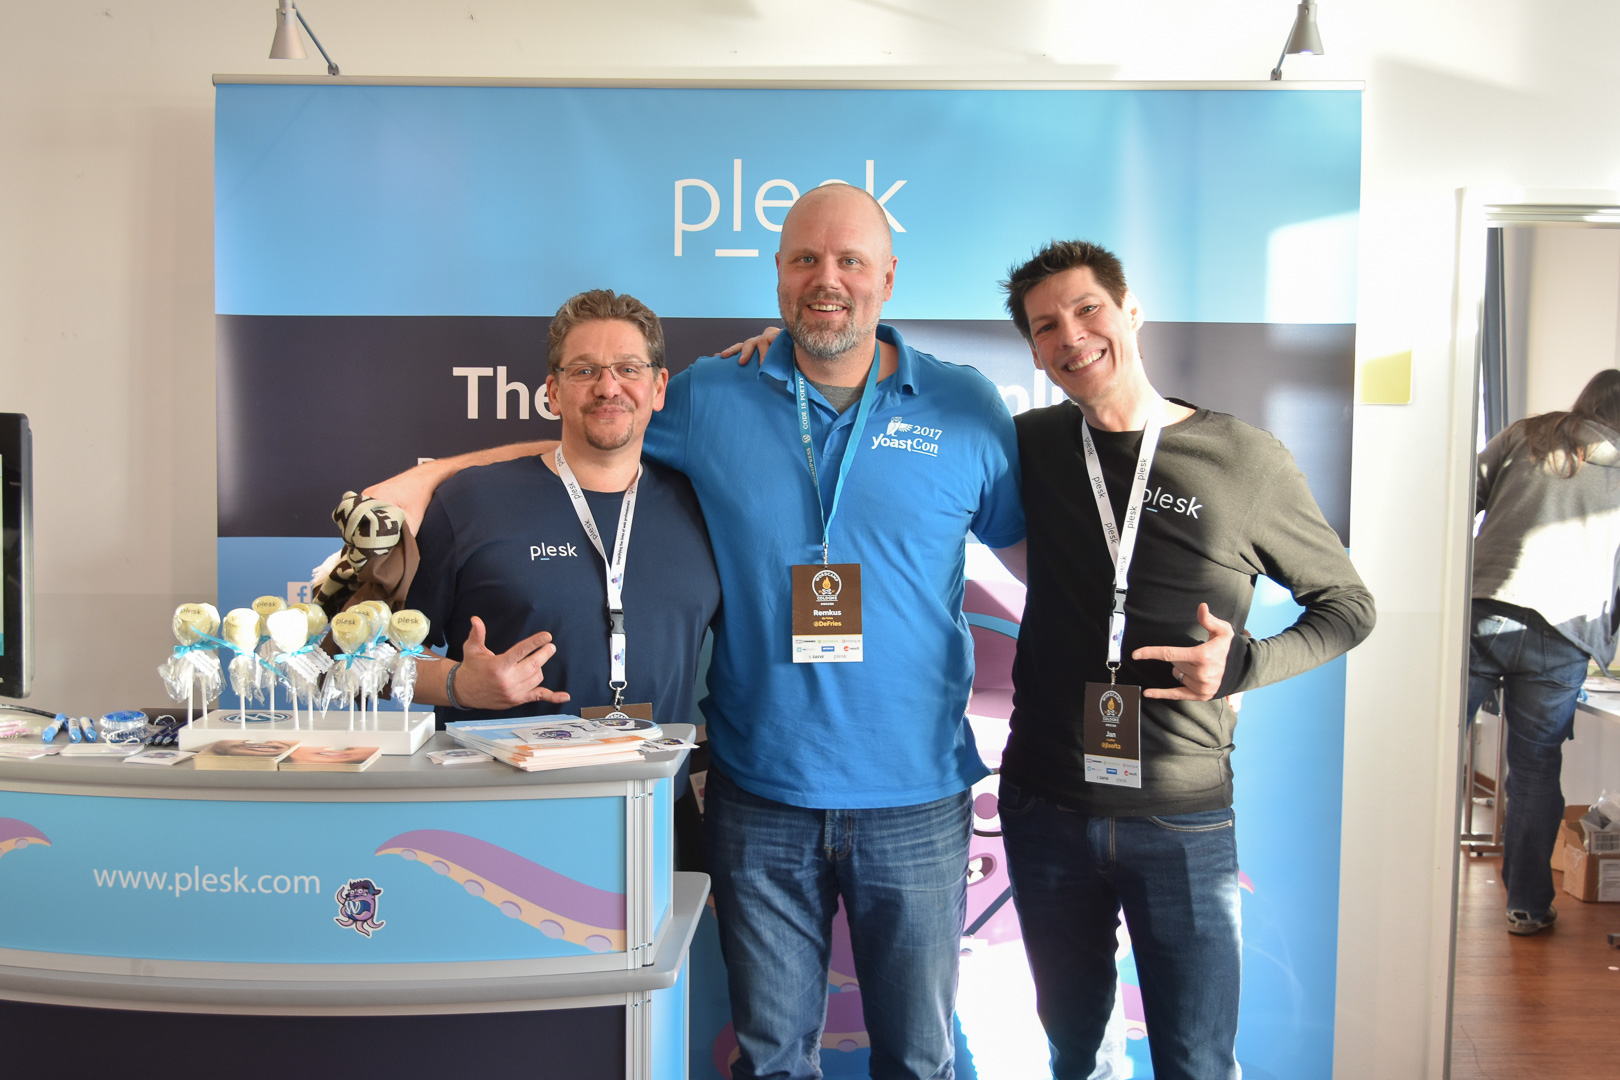 WordCamp Cologne, fun at the Plesk booth with Remkus De Vries, Jörg Strotmann and Jan Löffler